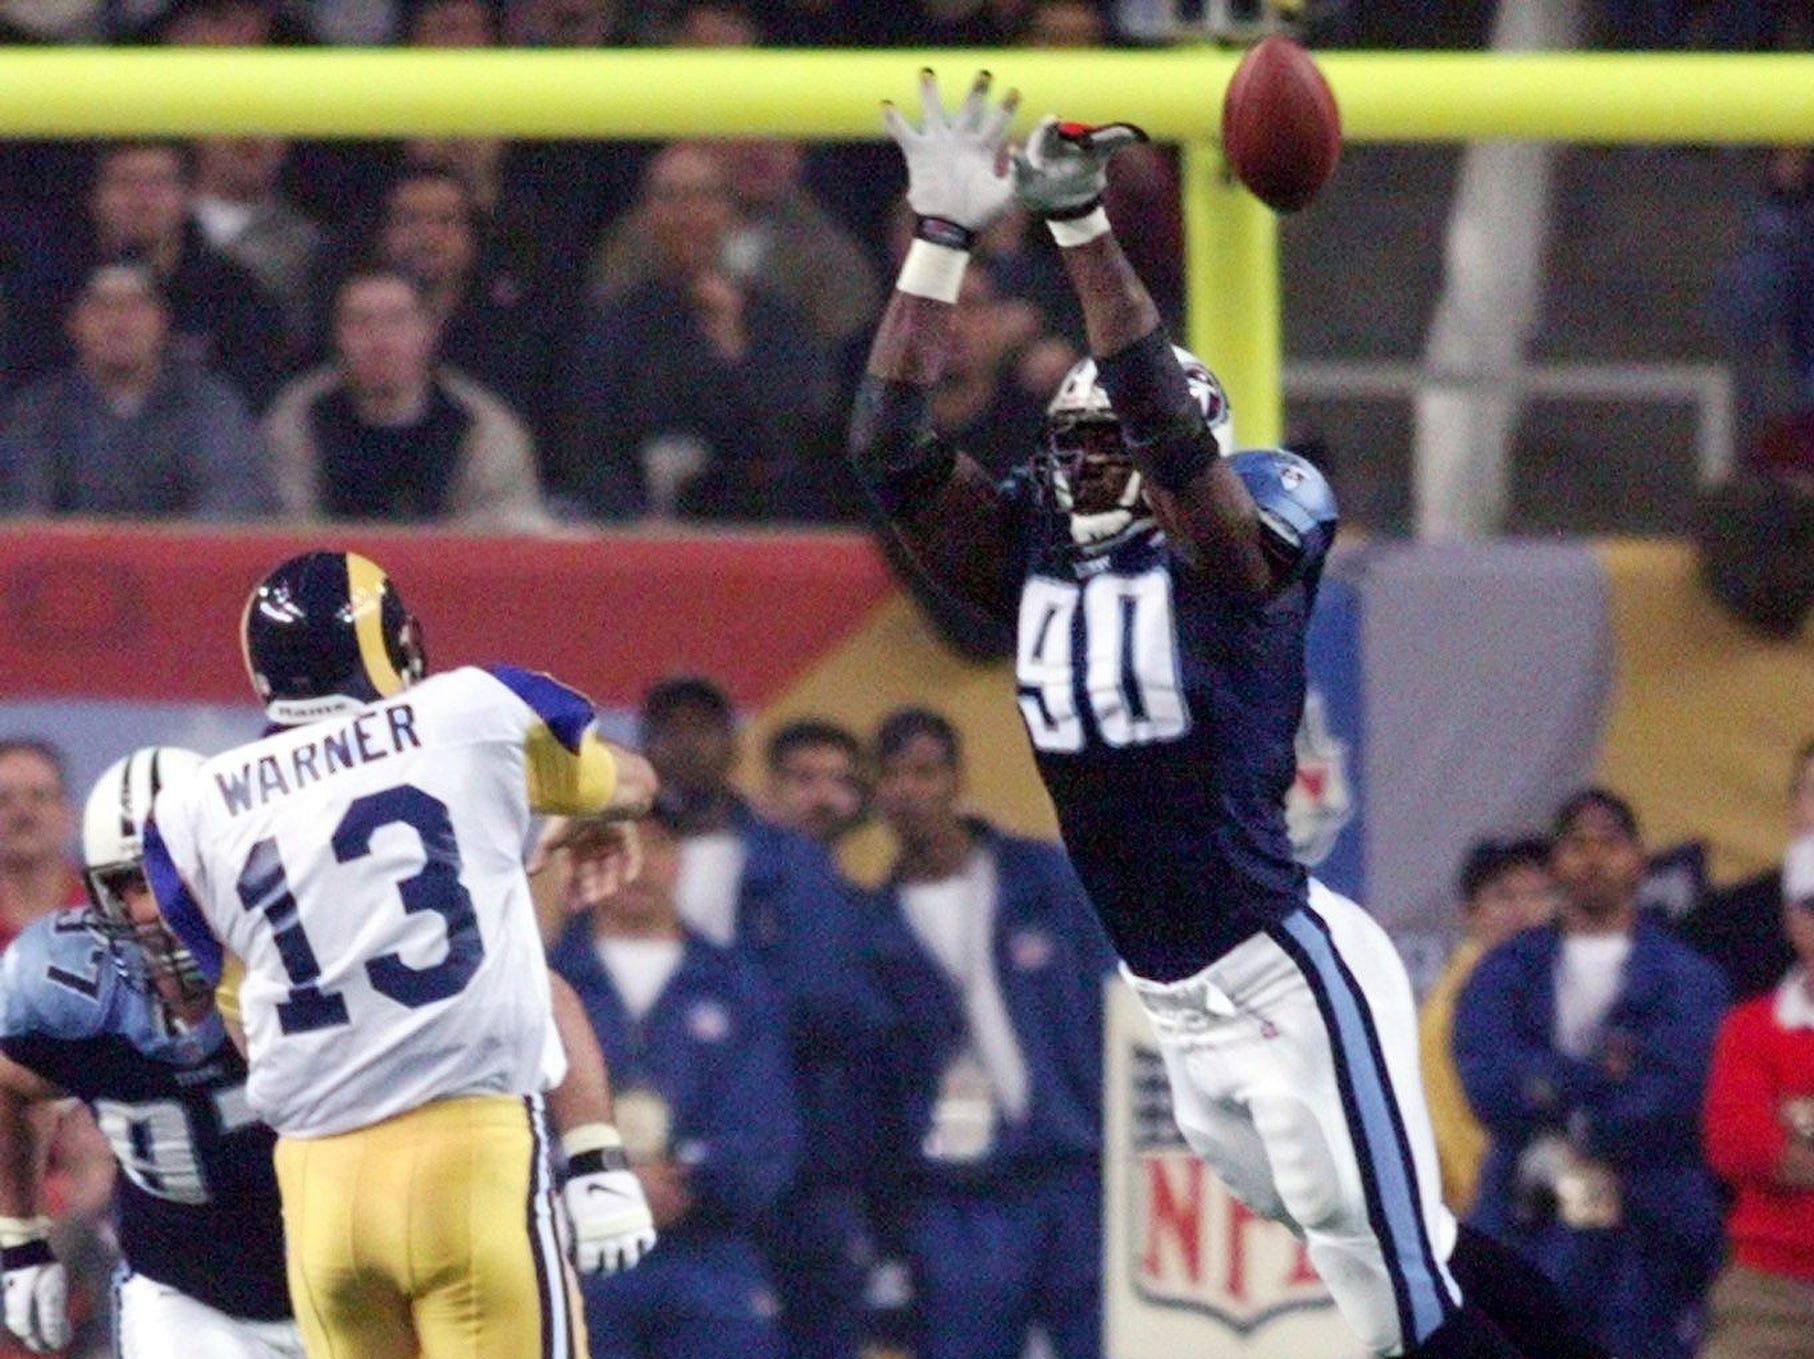 Tennessee Titans defensive end Jevon Kearse (90) blocks a pass by St. Louis Rams quarterback Kurt Warner during the 3rd quarter Jan. 30, 2000. The Titans just fell inches short in a 23-16 Rams' victory in Super Bowl XXXIV.